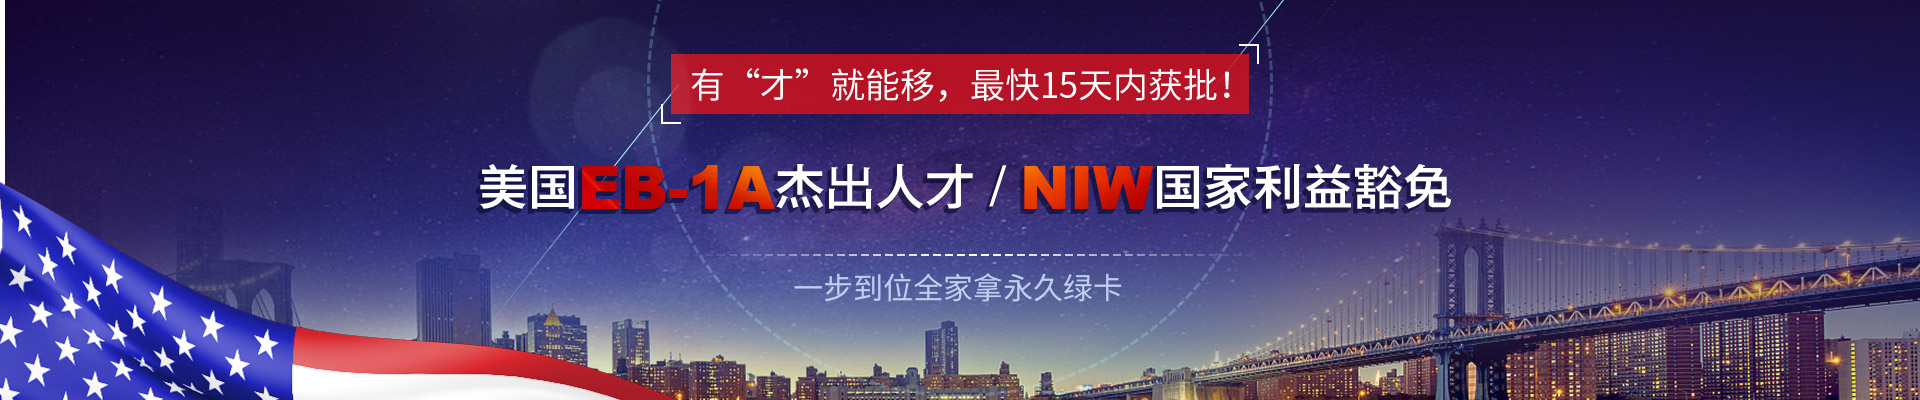 <font color='red'>美国</font>EB-1A杰出人才/NIW国家利益豁免